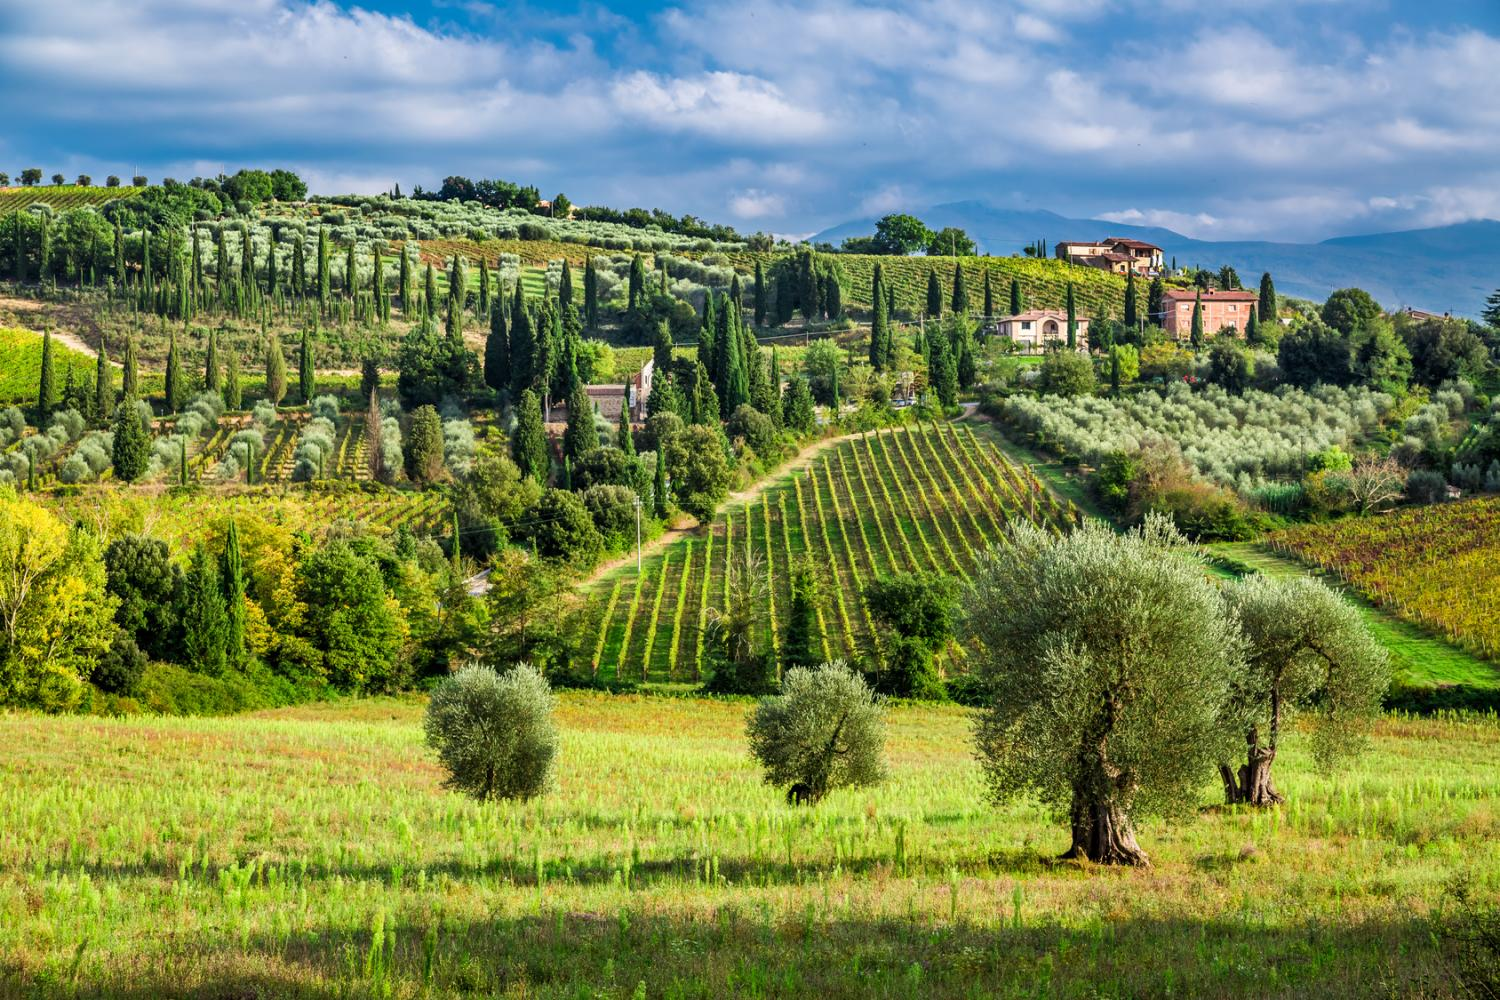 Enjoy frequent photo-stops to capture the beauty of the Tuscan landscape